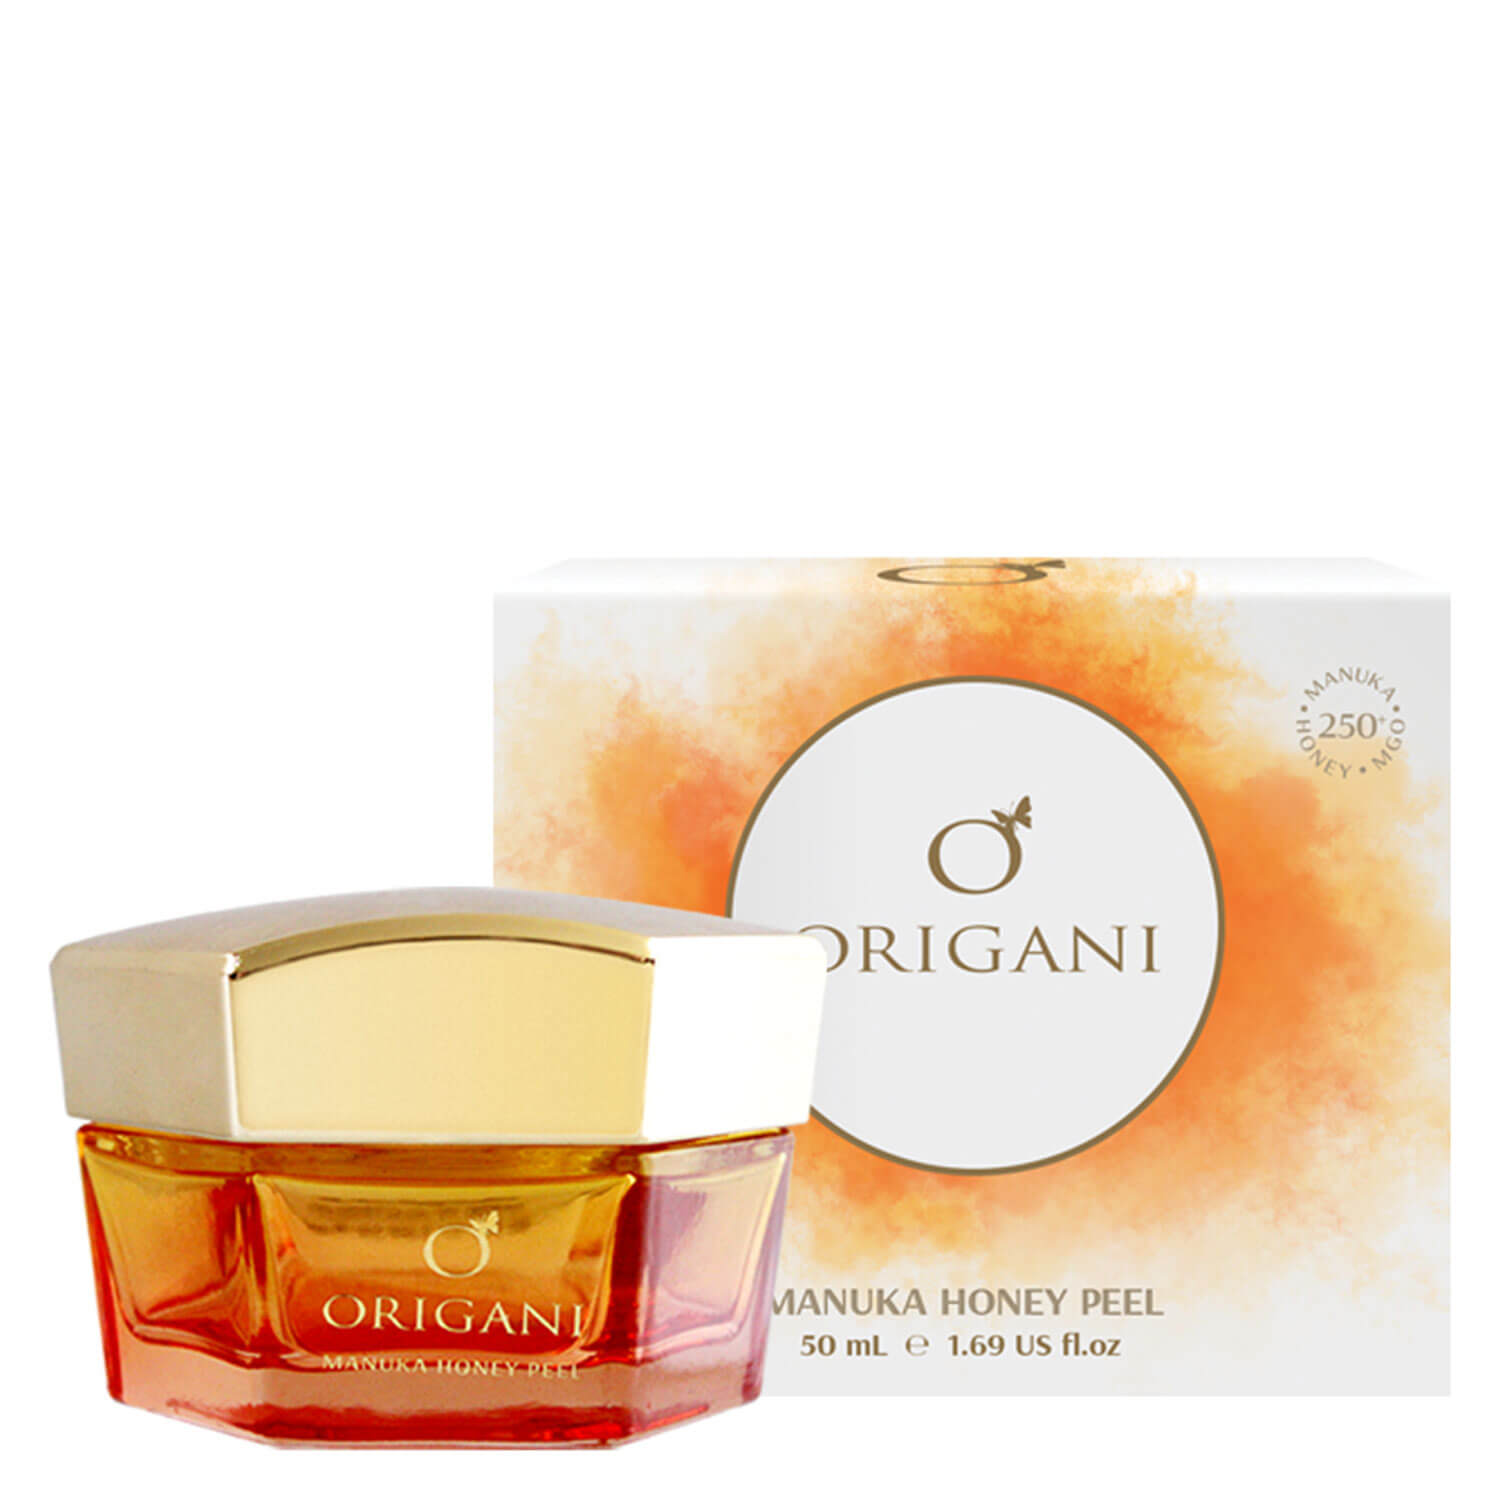 Origani - Erda Manuka Honey Peel